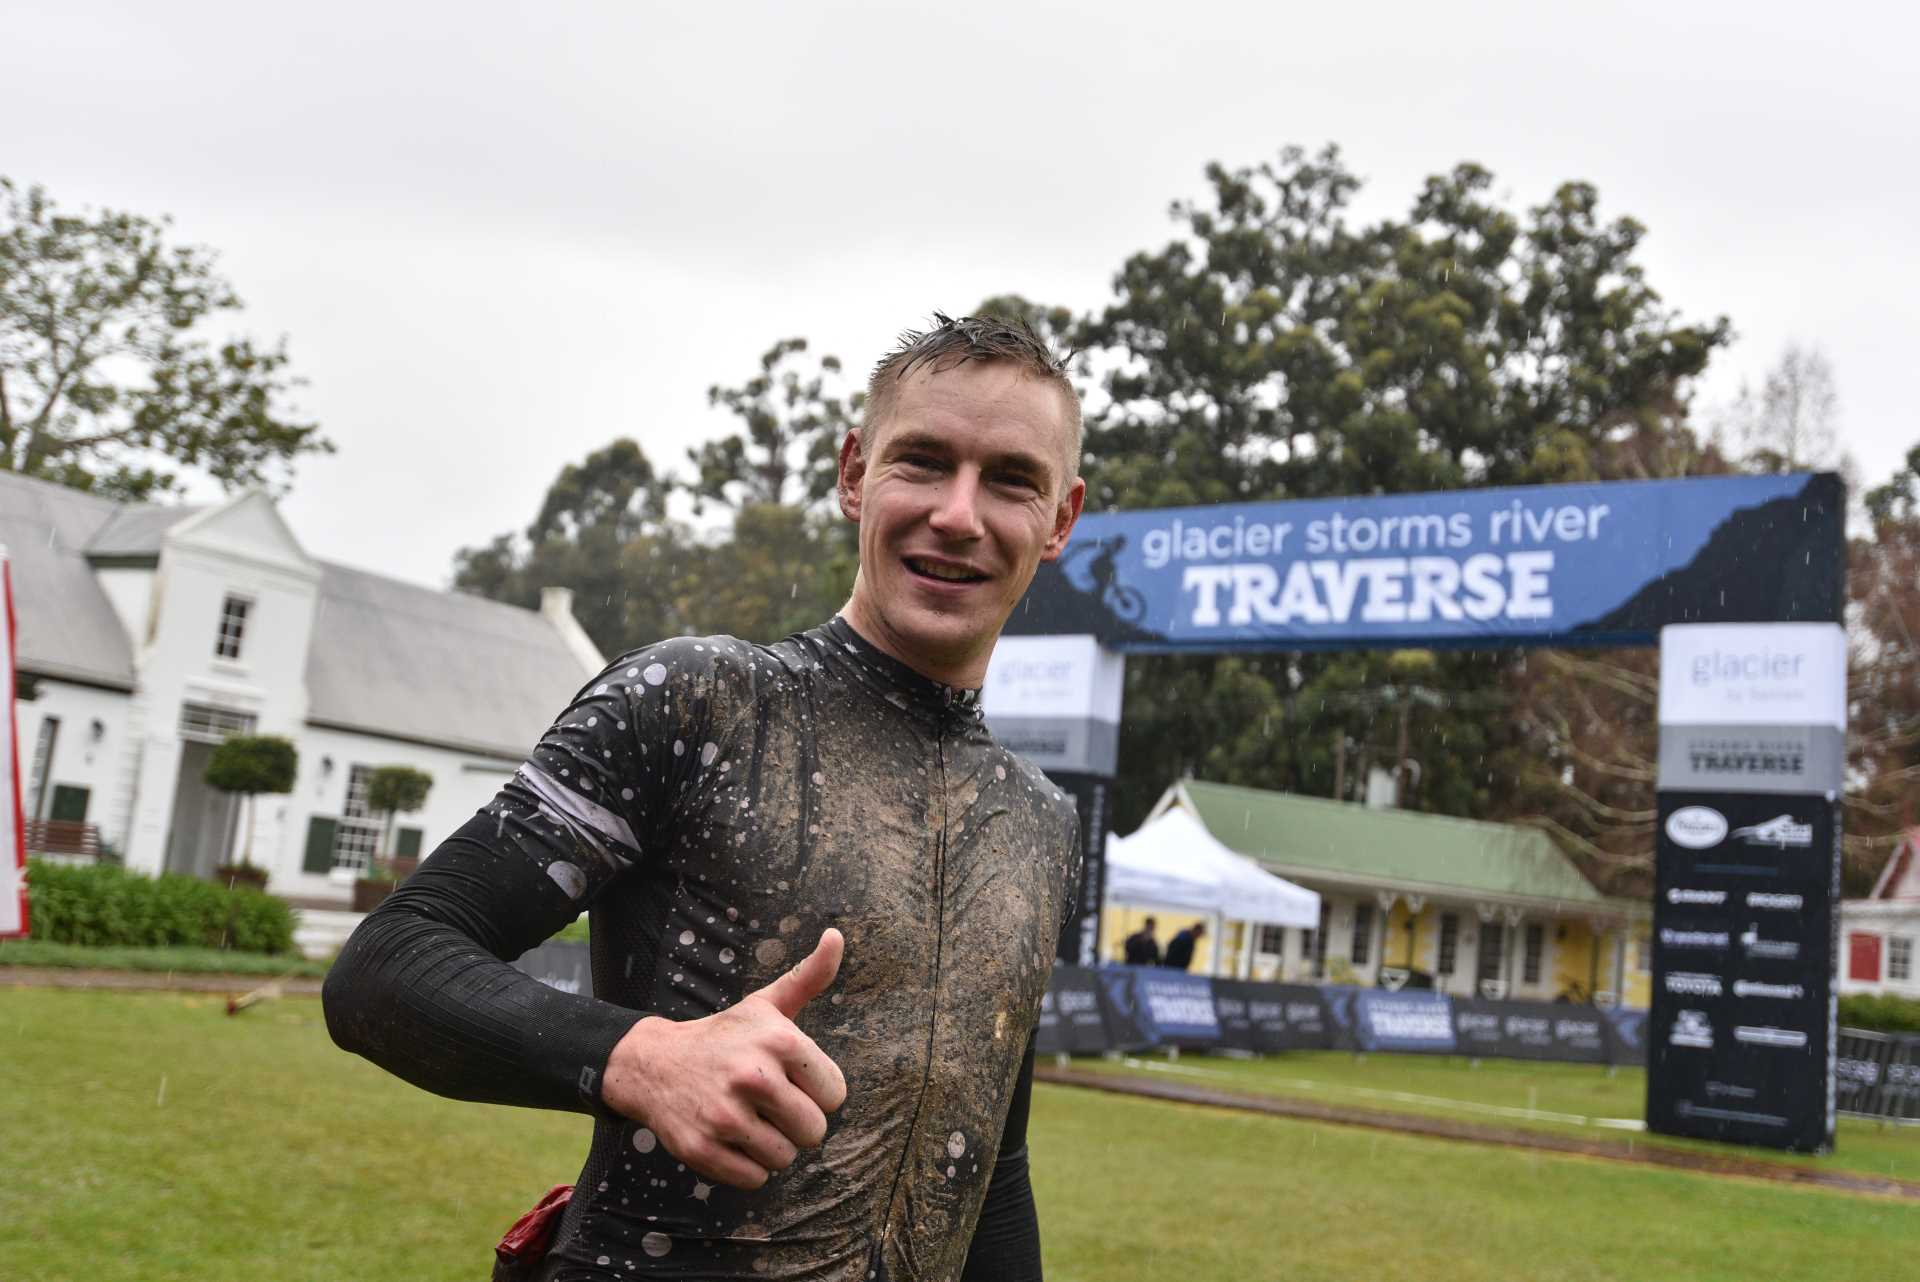 2018 Glacier Storms River Traverse Stage 1 captured by Marike Cronje for www.zcmc.co.za